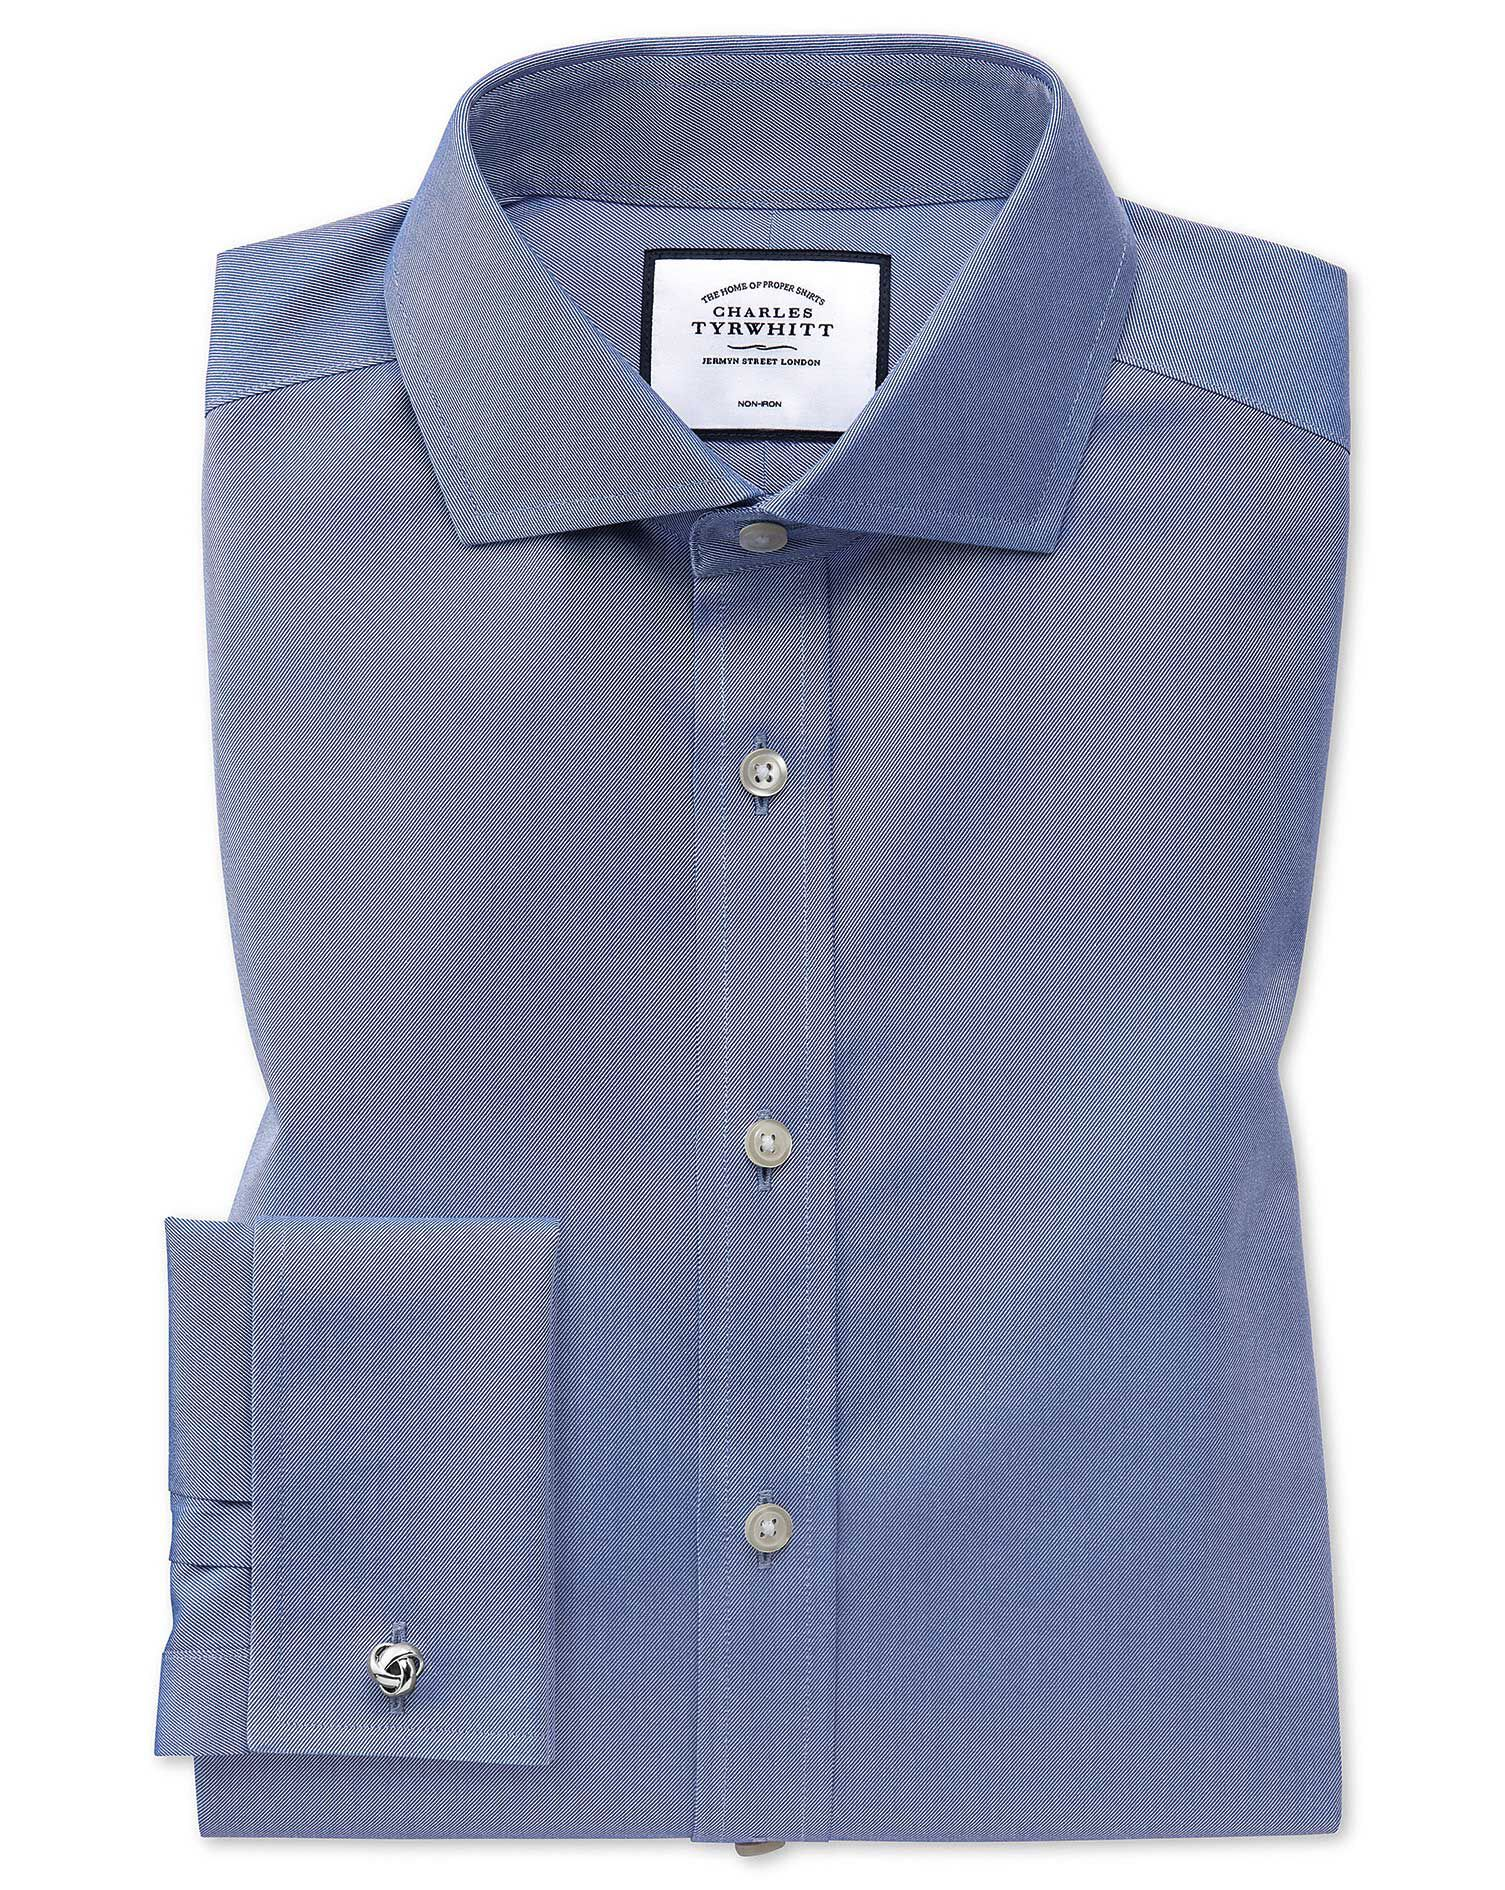 Slim Fit Cutaway Non-Iron Twill Mid Blue Cotton Formal Shirt Single Cuff Size 17/38 by Charles Tyrwh